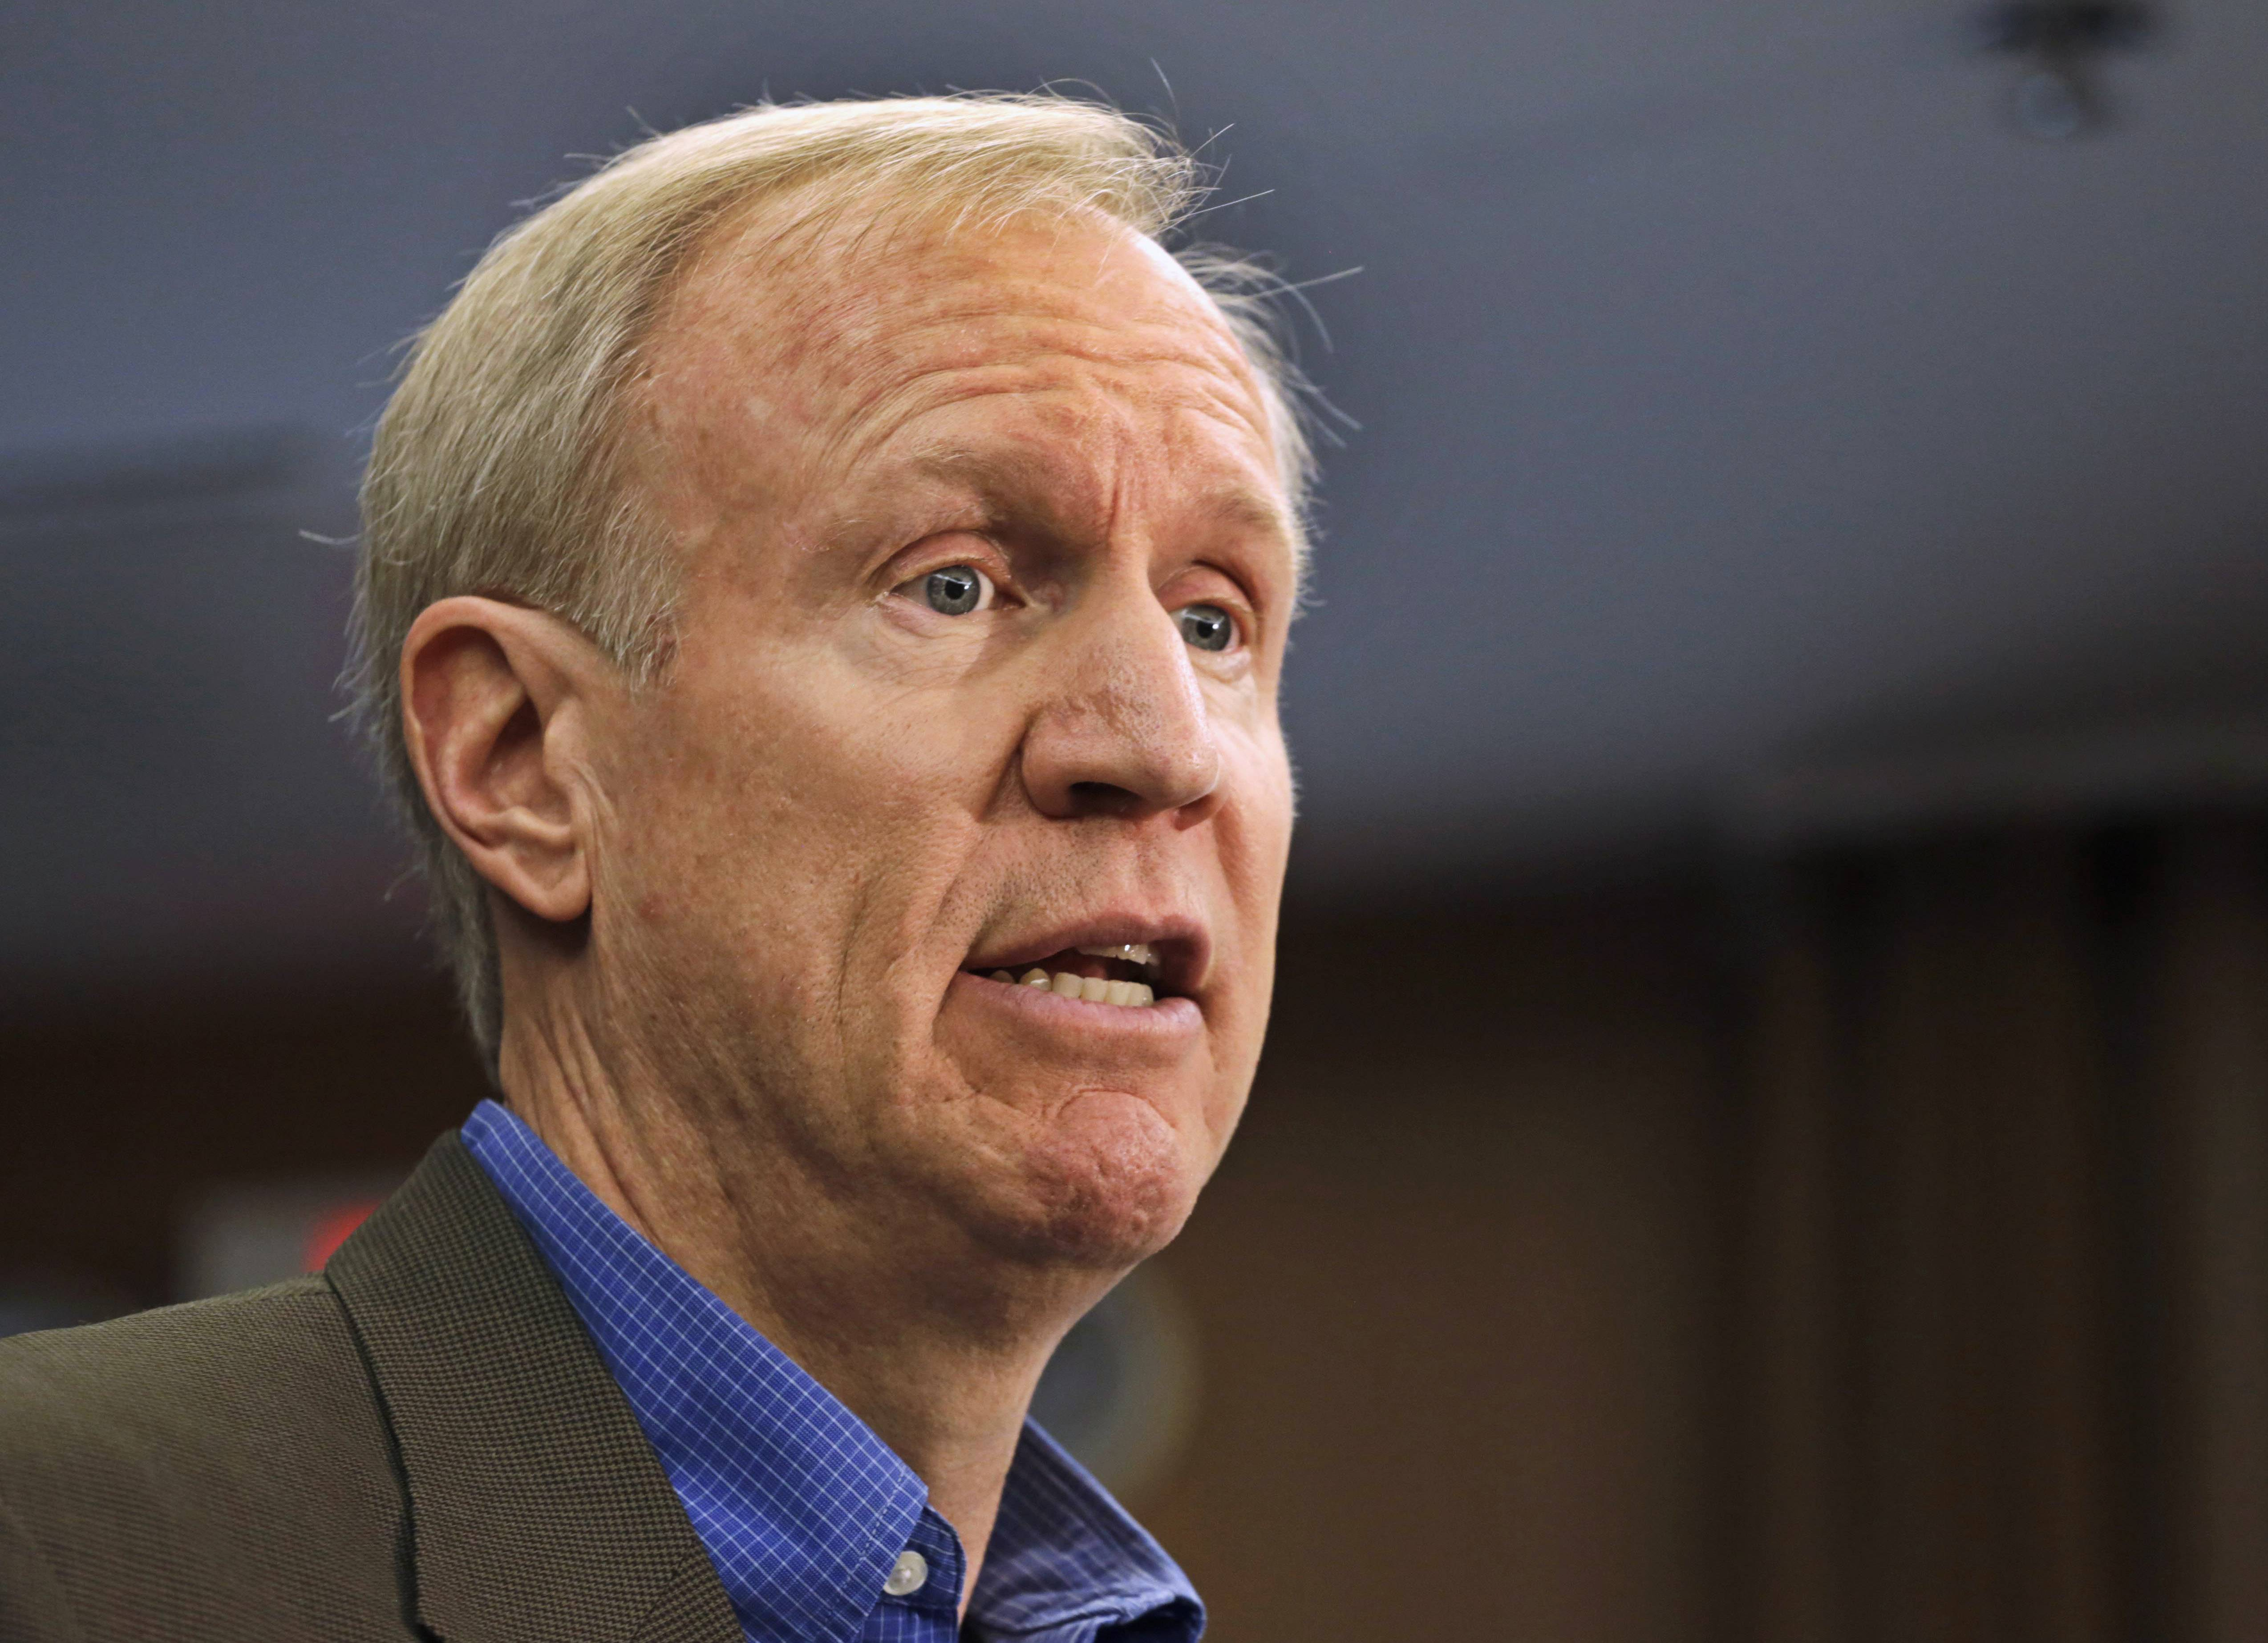 Illinois Republican gubernatorial candidate Bruce Rauner, seen here speaking at a news June 12 conference in Chicago, says Gov. Quinn's time in office has hurt the jobs outlook in Illinois not helped.